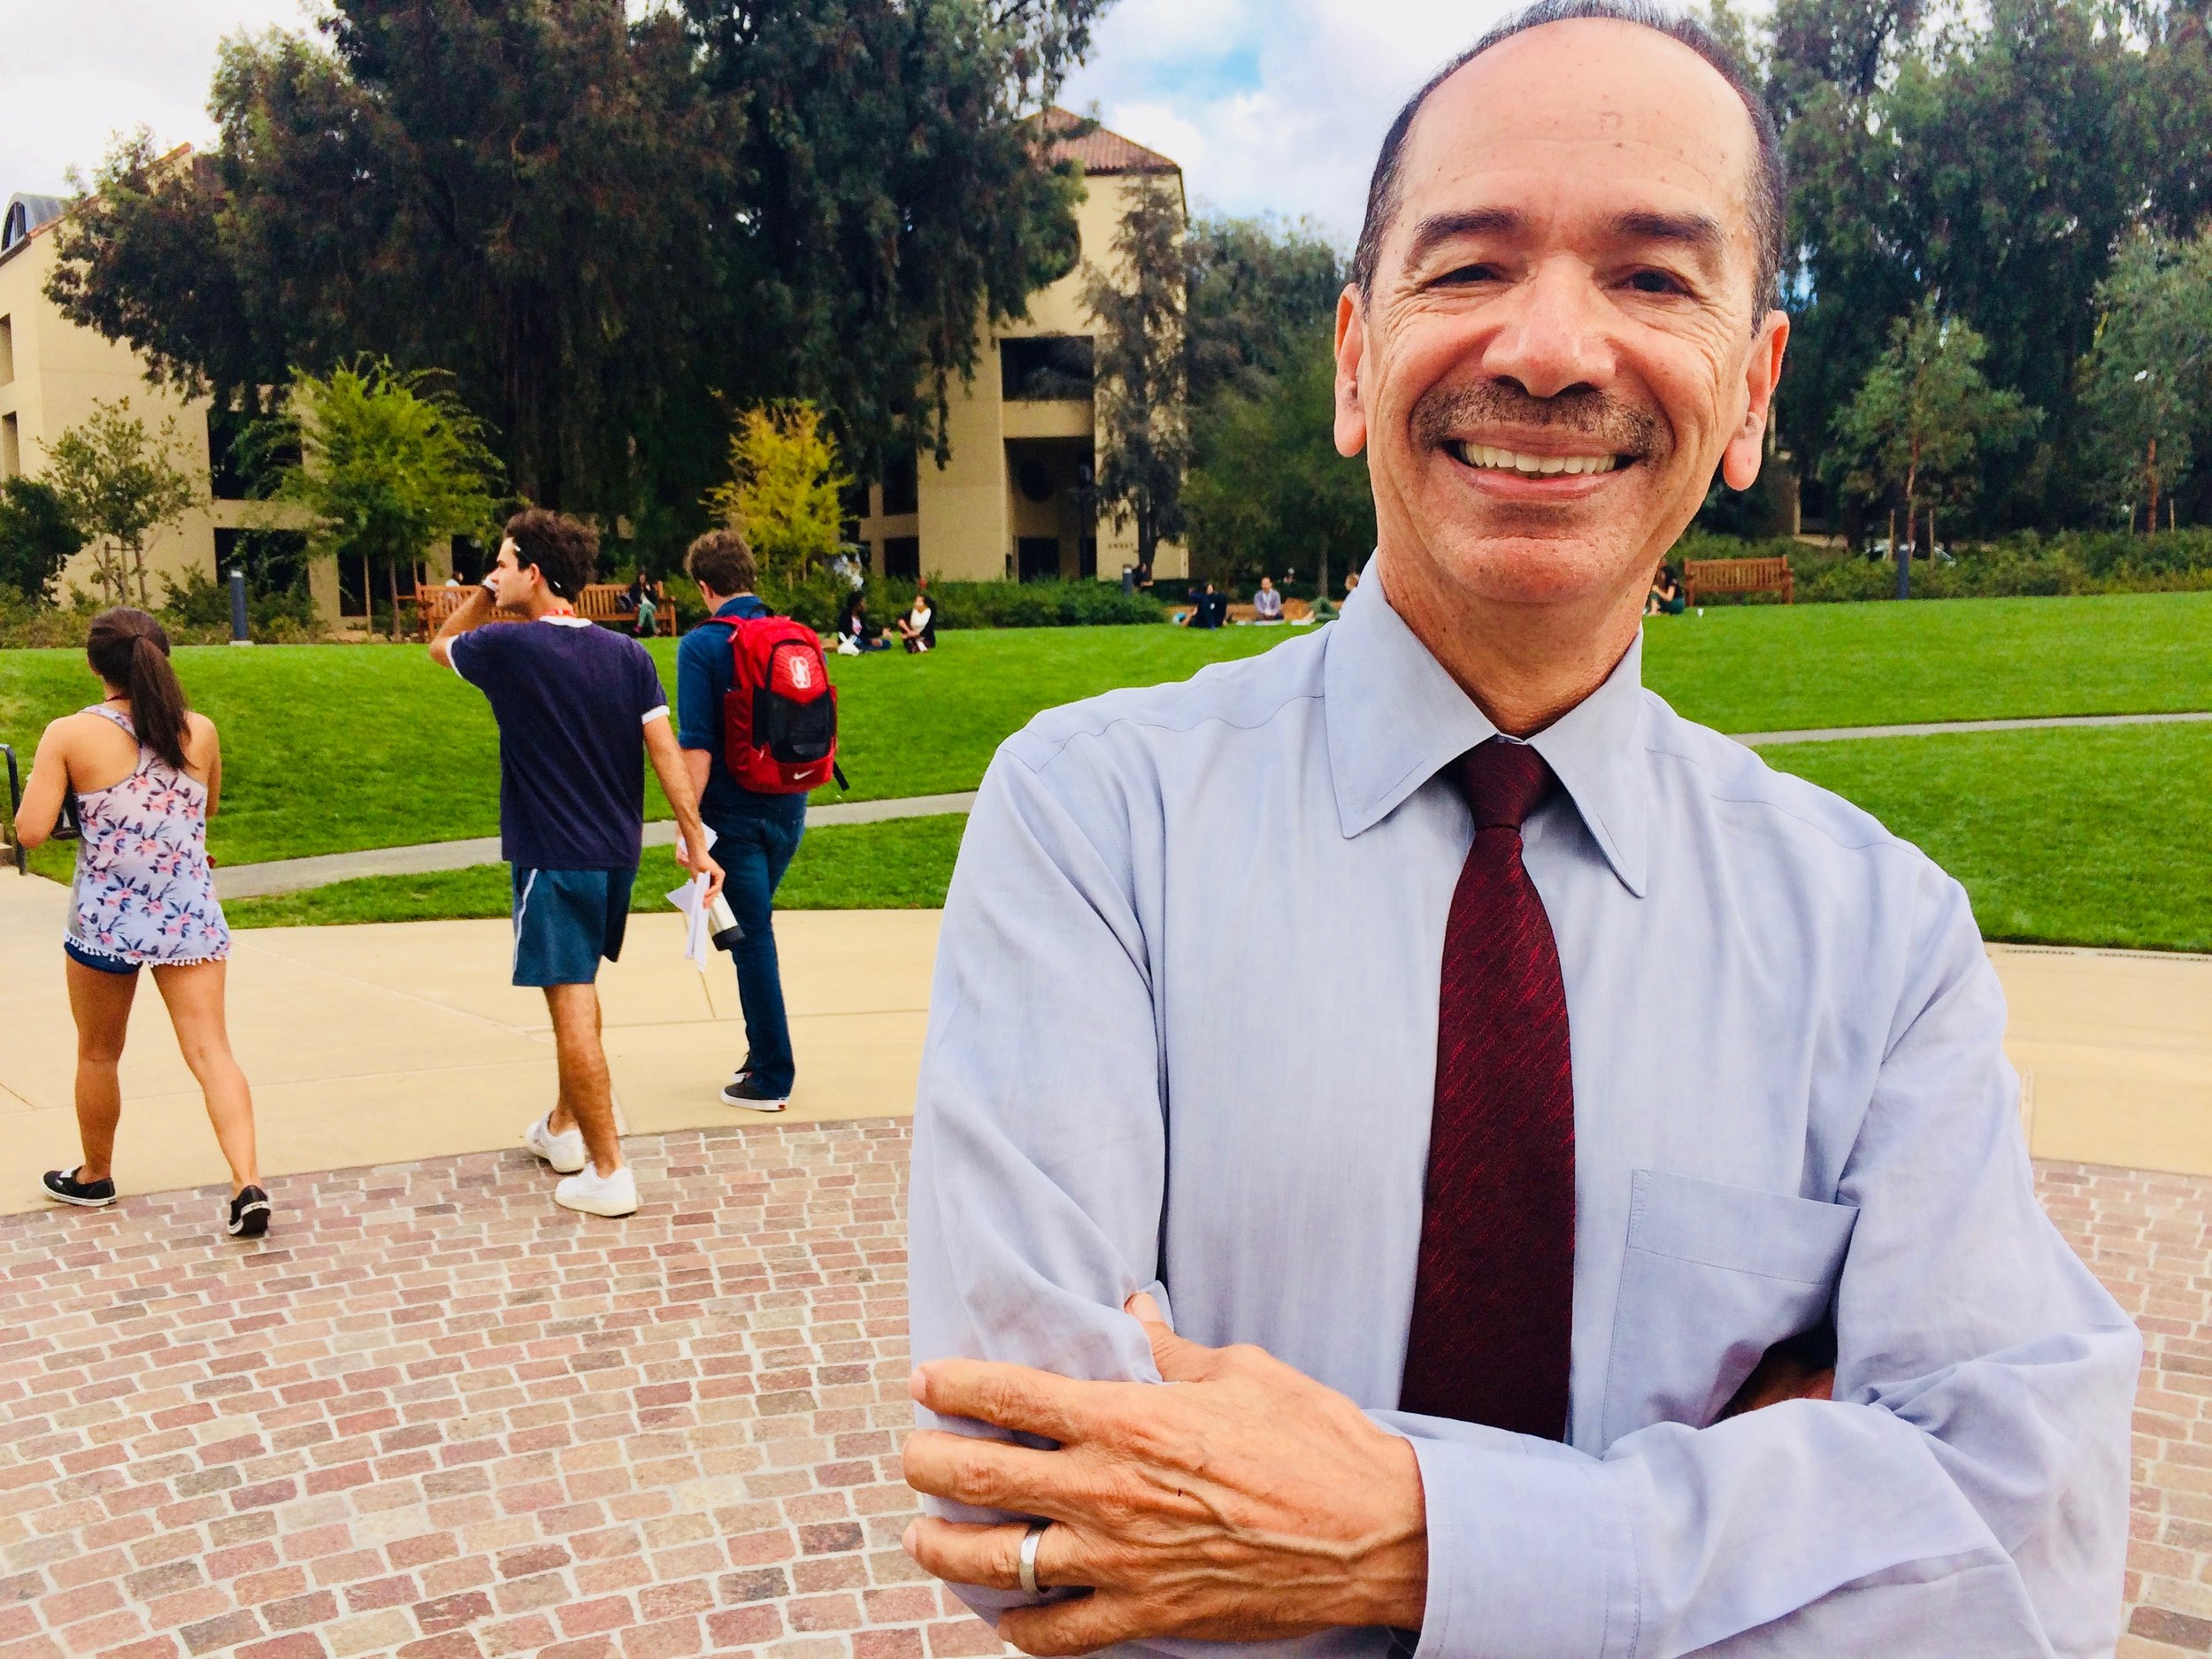 """Stanford English and Comparative Literature Professor Ramon Saldivar has written extensively about Oscar Zeta Acosta. Some of his best known works include """"Chicano Narrative: The Dialectics of Difference (1990), a history of the development of Chicano narrative forms,"""" and """"The Borderlands of Culture: Américo Paredes and the Transnational Imaginary."""""""